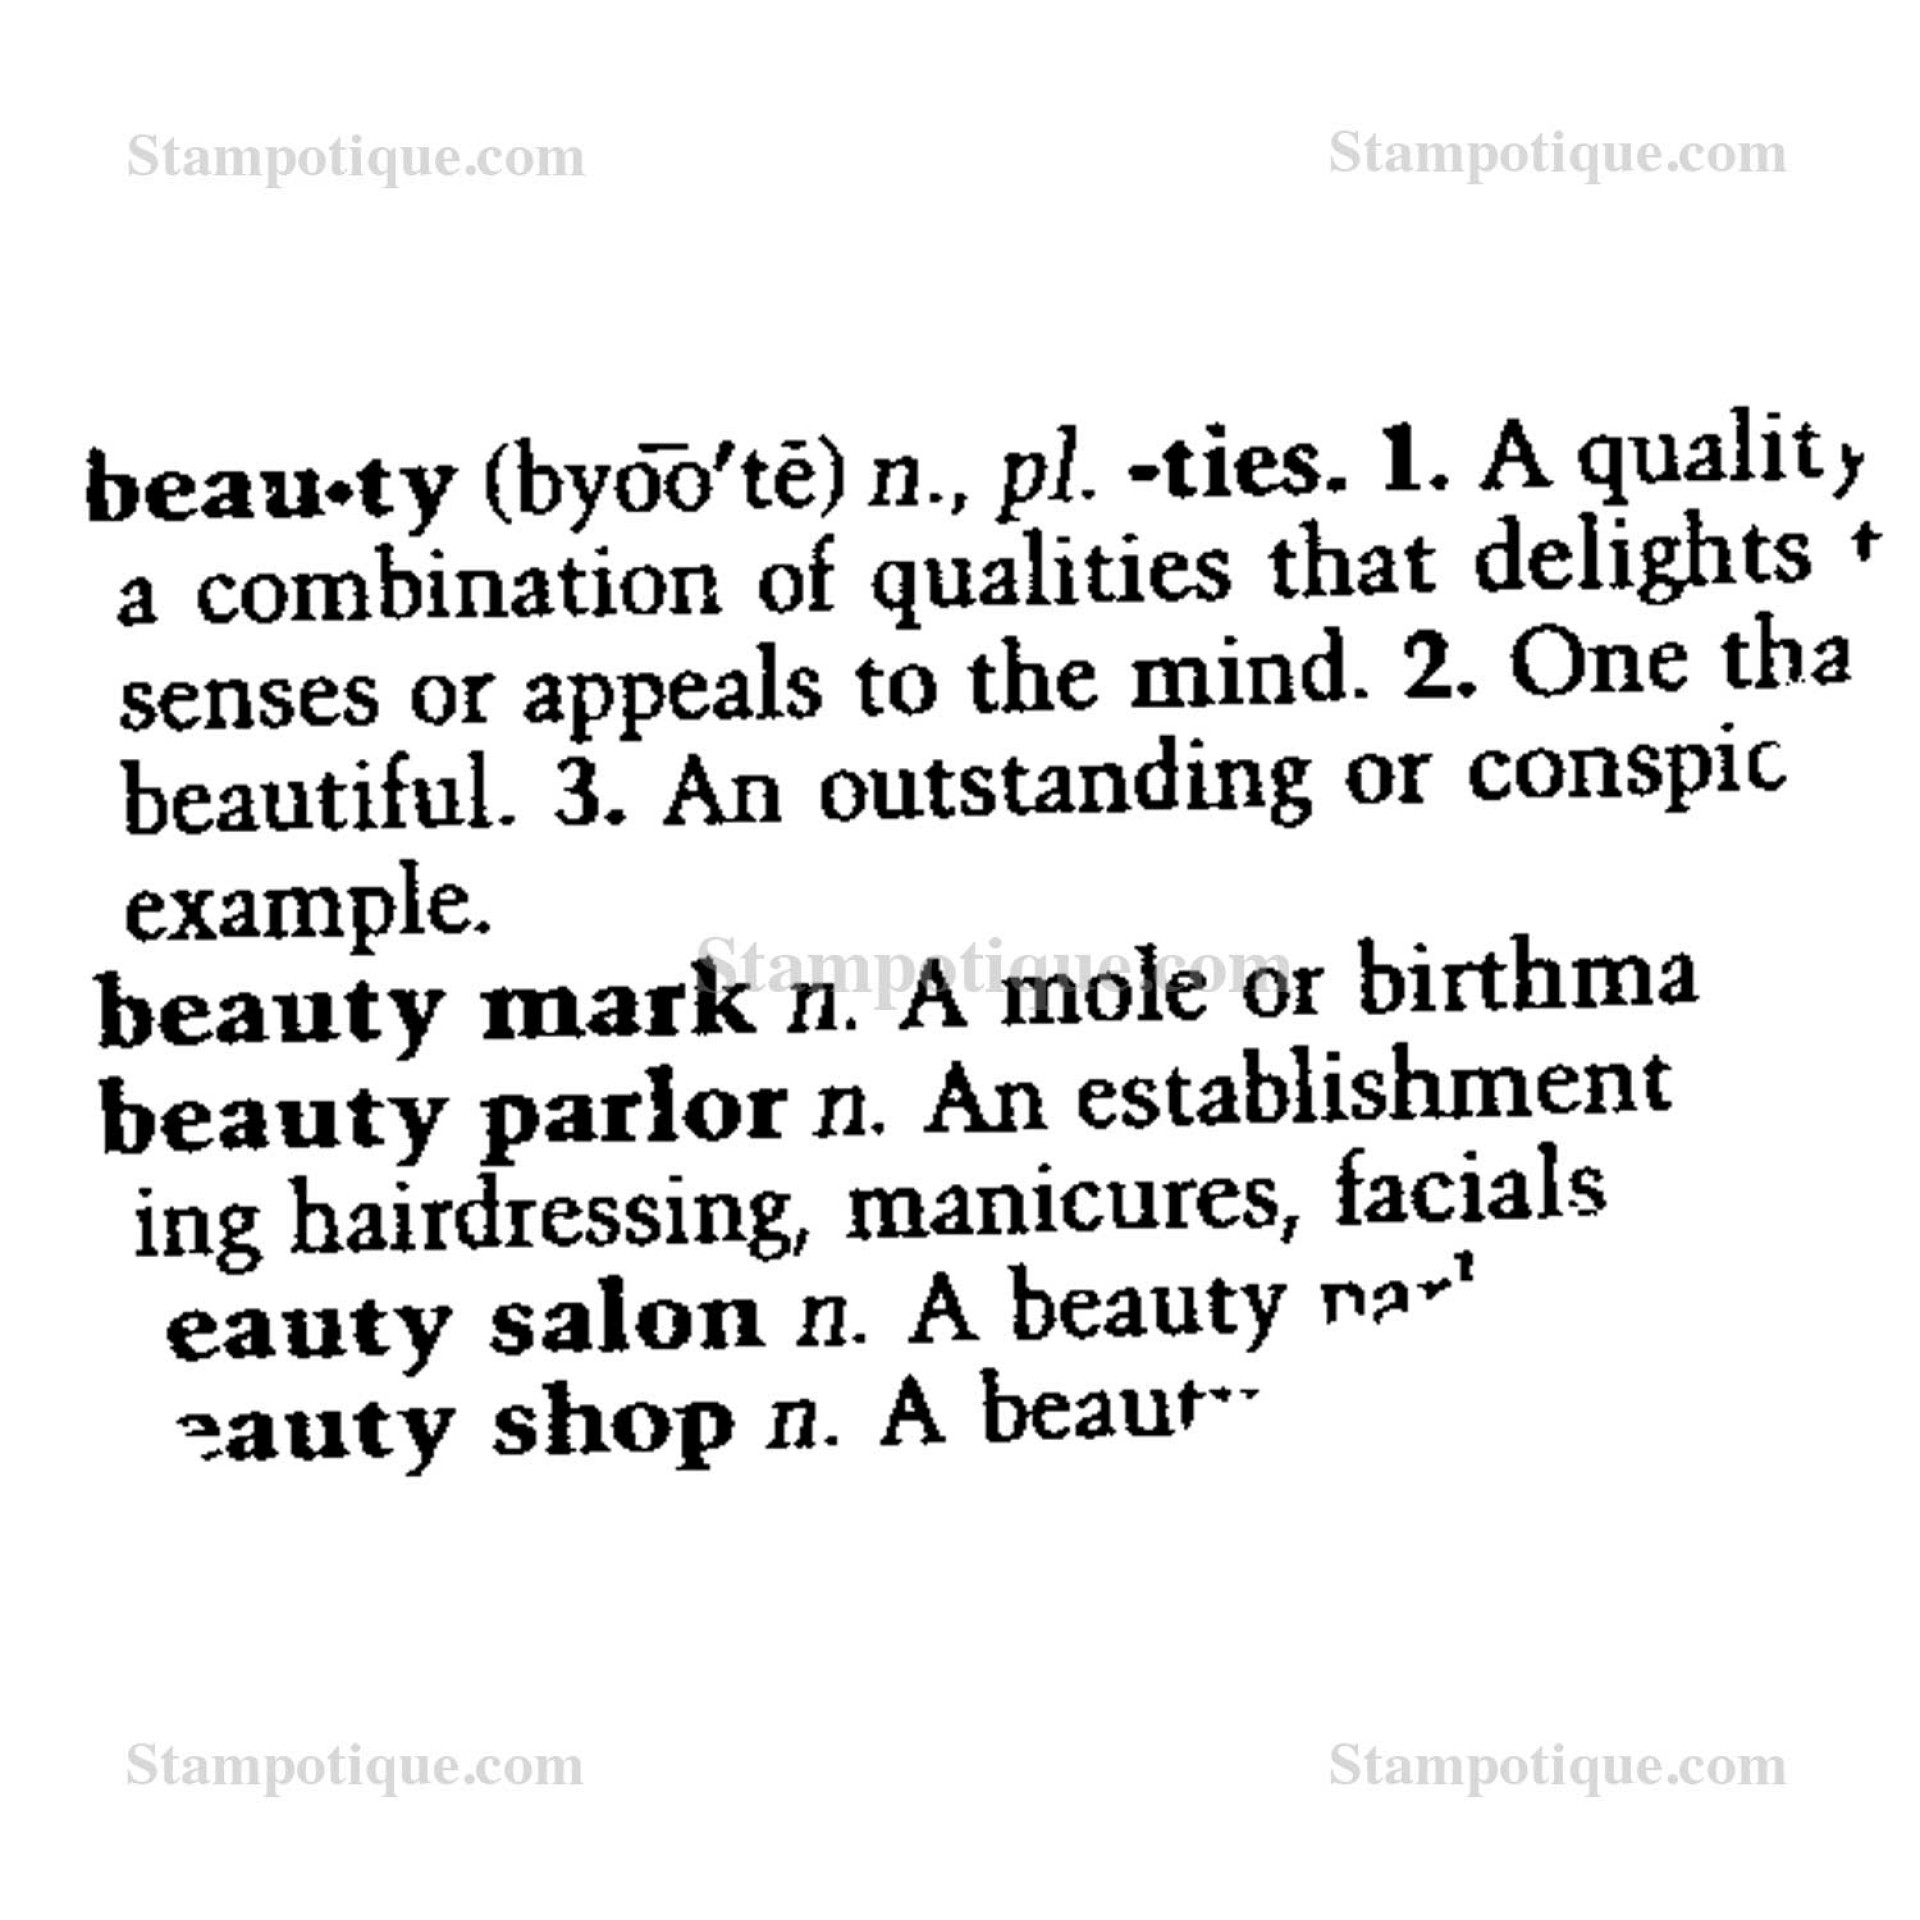 001 definition essay on beauty example thatsnotus